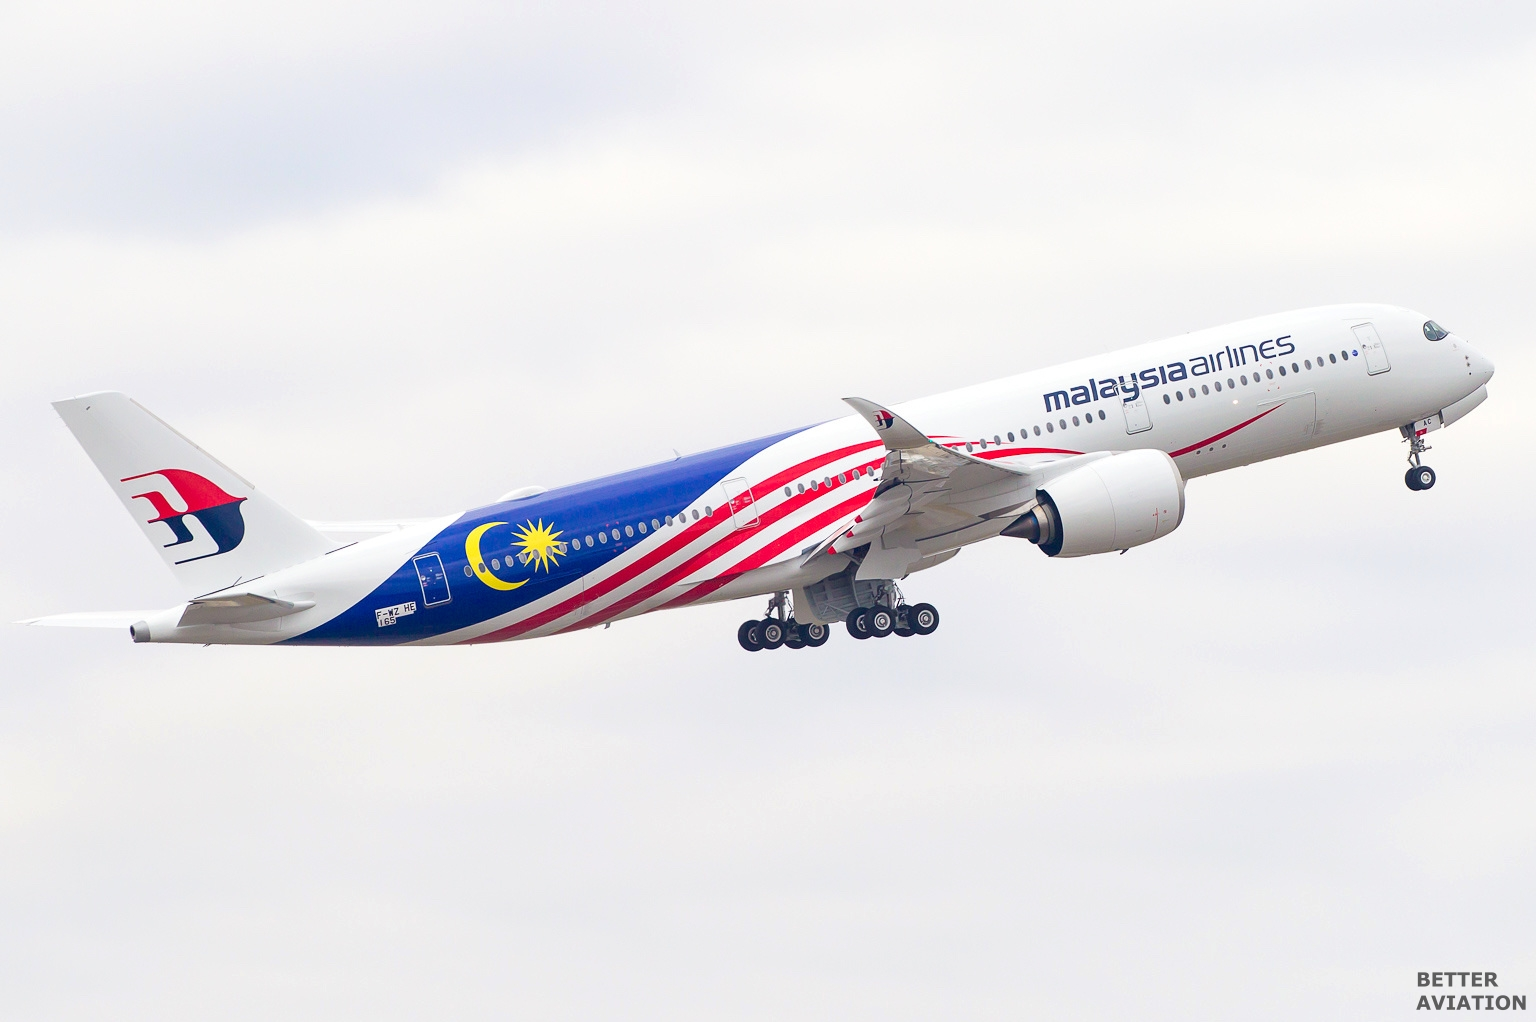 Malaysia Airlines Cadet Pilot Trainee (2019) - Better Aviation